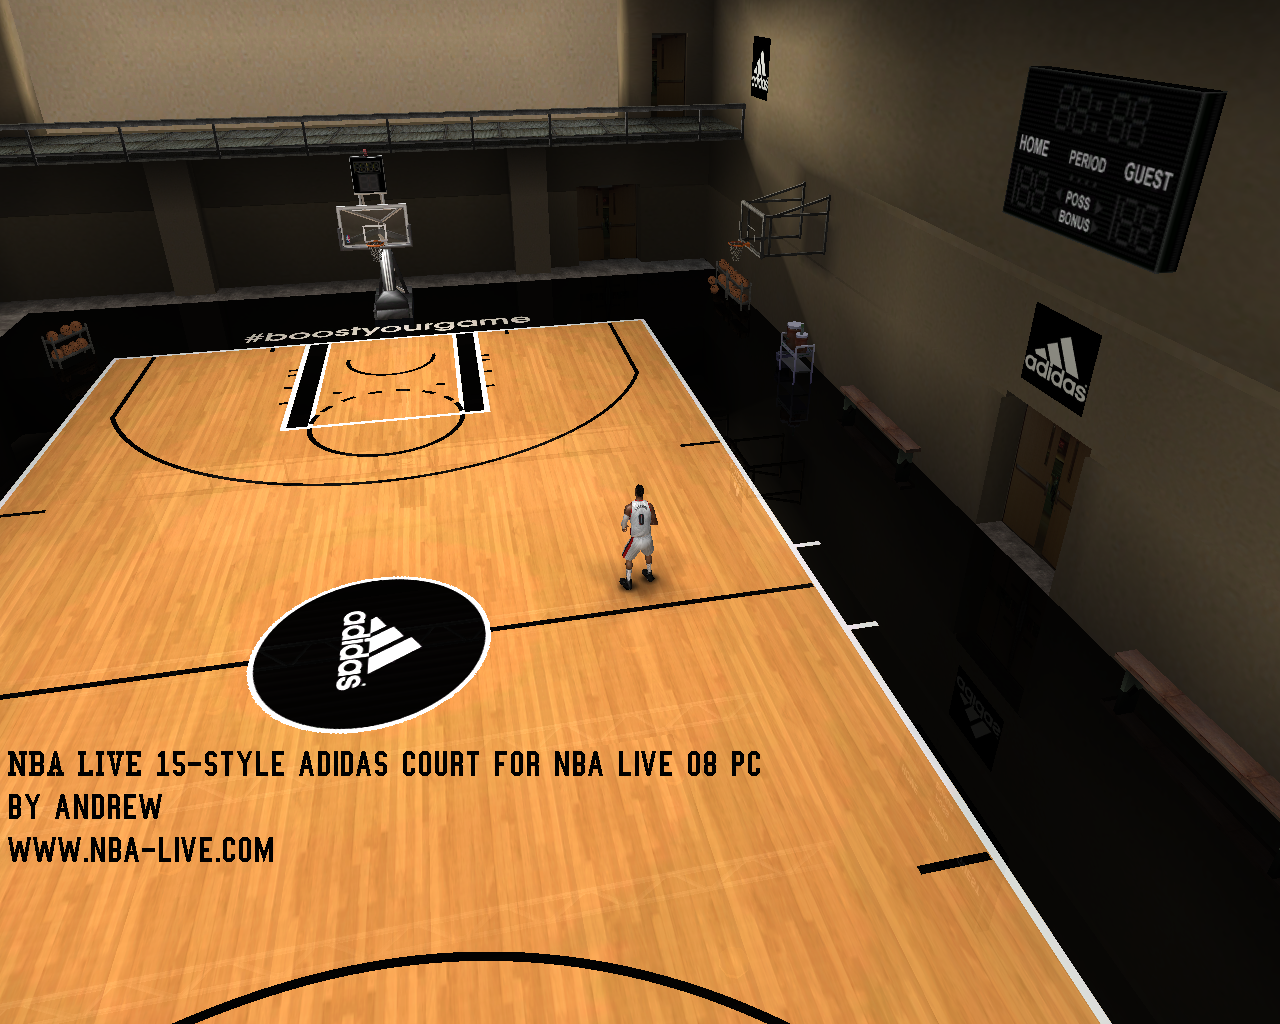 NBA Live 15-Style Adidas Practice Court